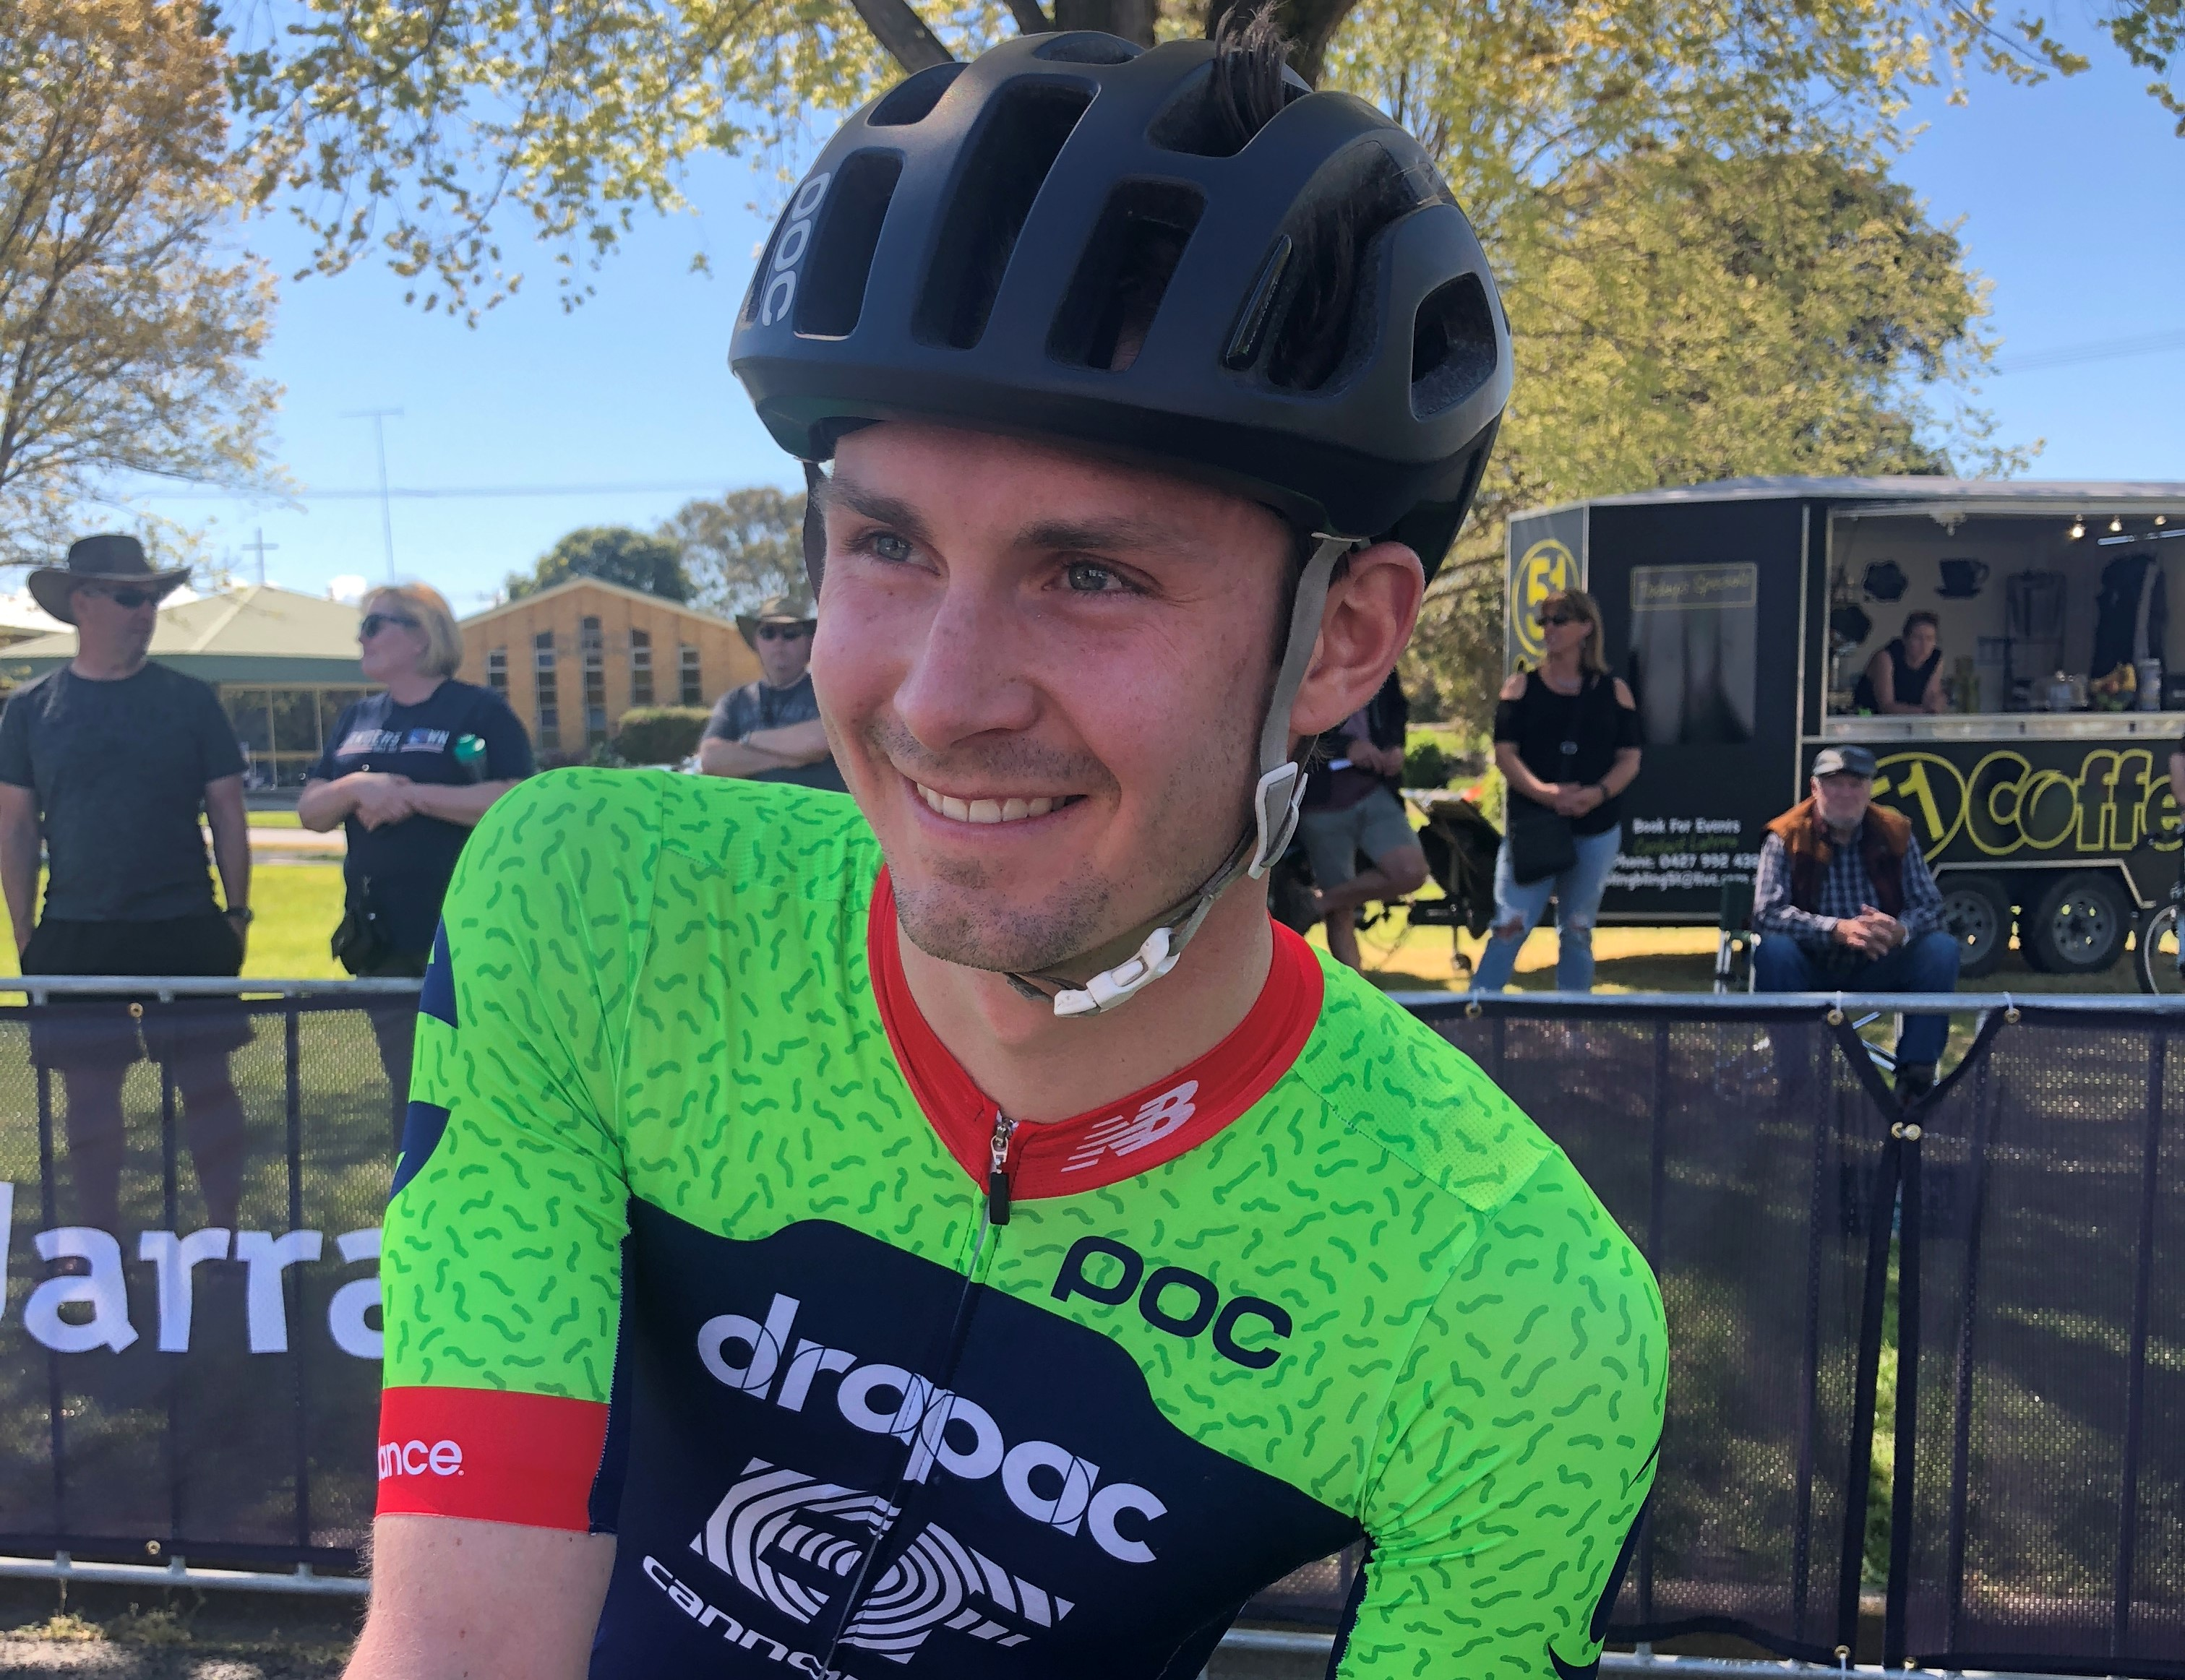 Oliver Kent-Spark Drapac cycling team